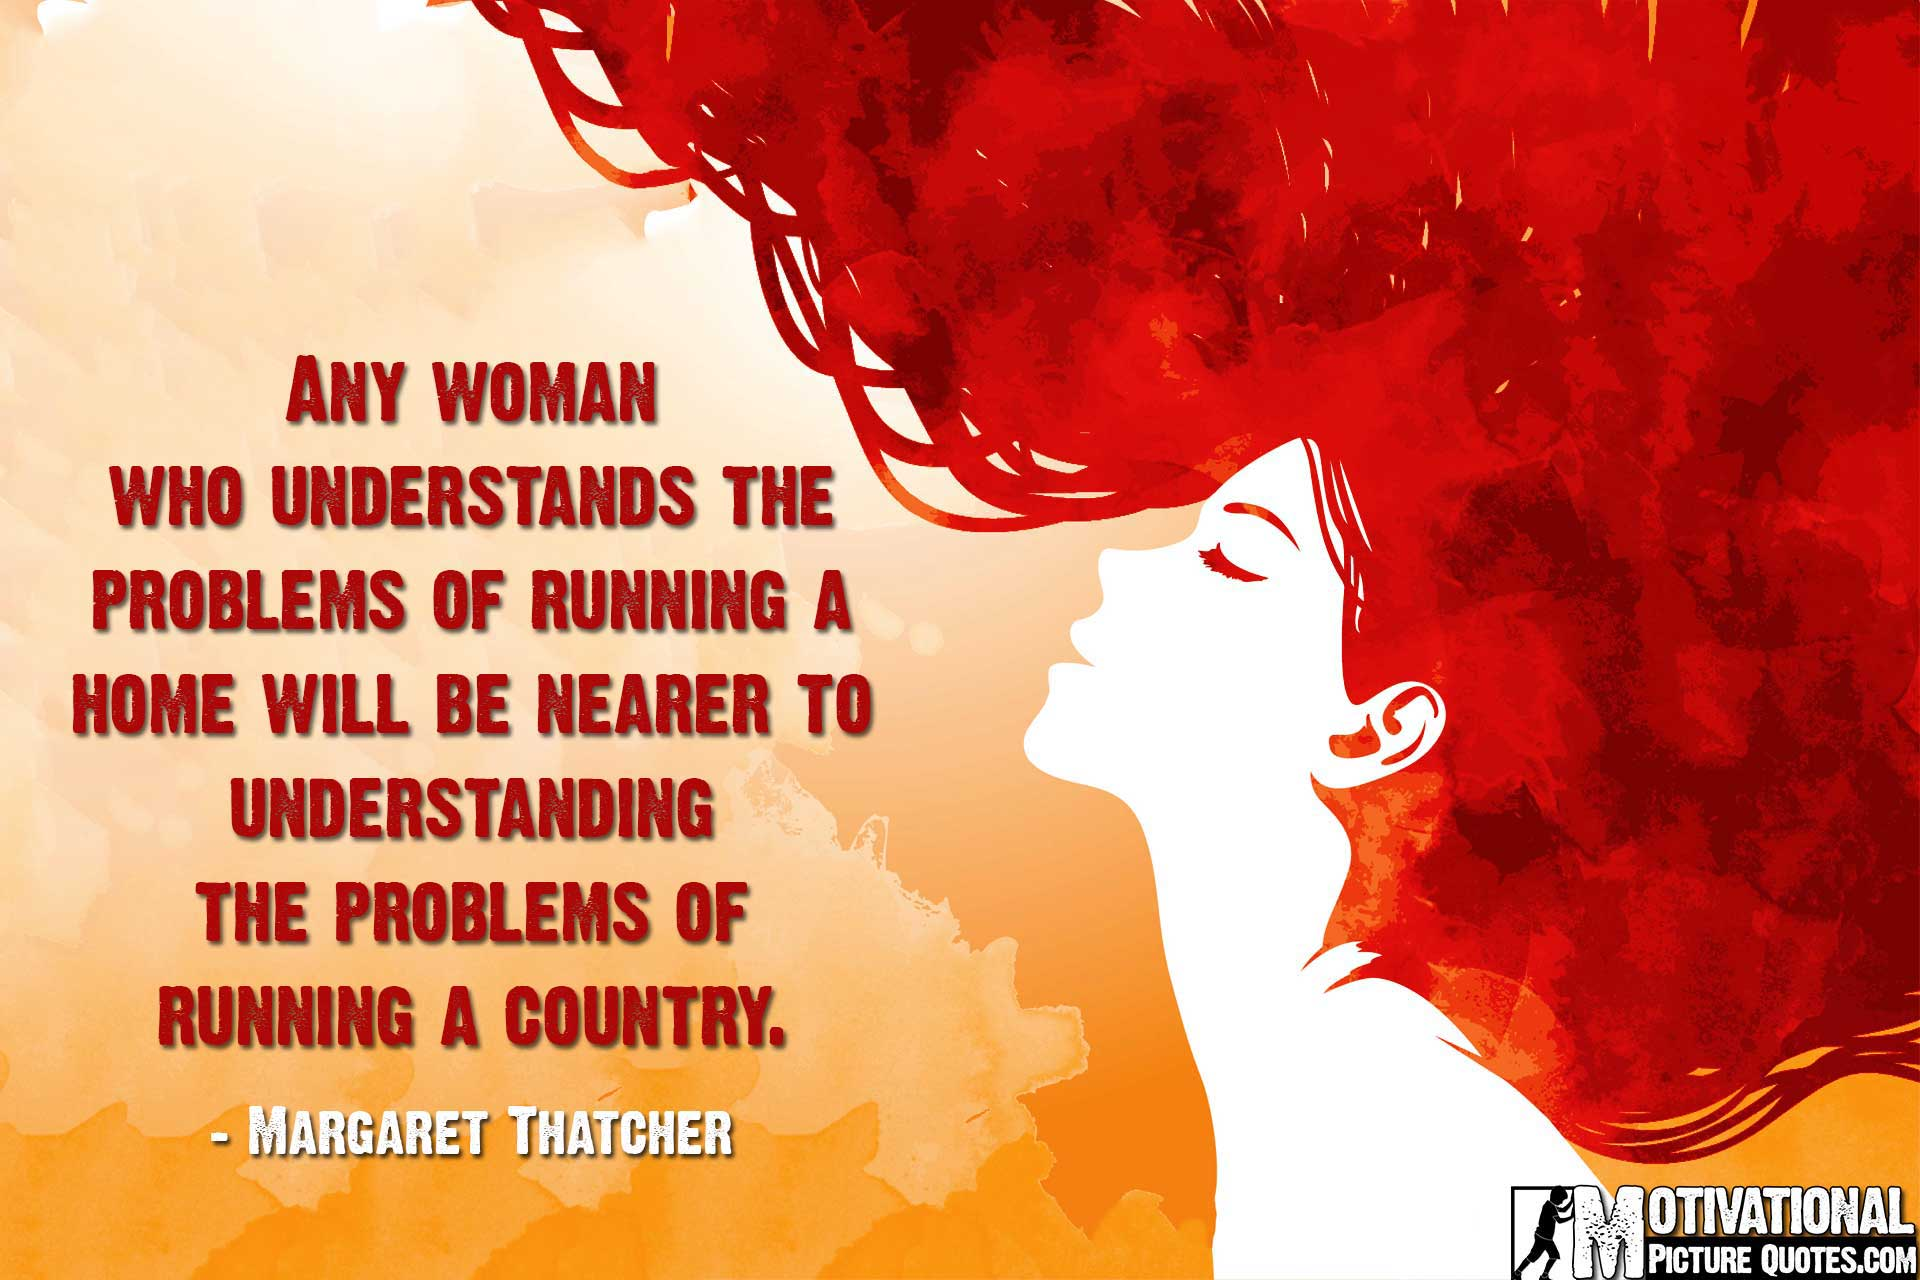 margaret-thatcher-motivational-quotes-and-images-about-an-empowered-woman. Empowering messages for females, girls, and teenagers - believing in youself and abilities and searching for ways to improve your life and your mind.